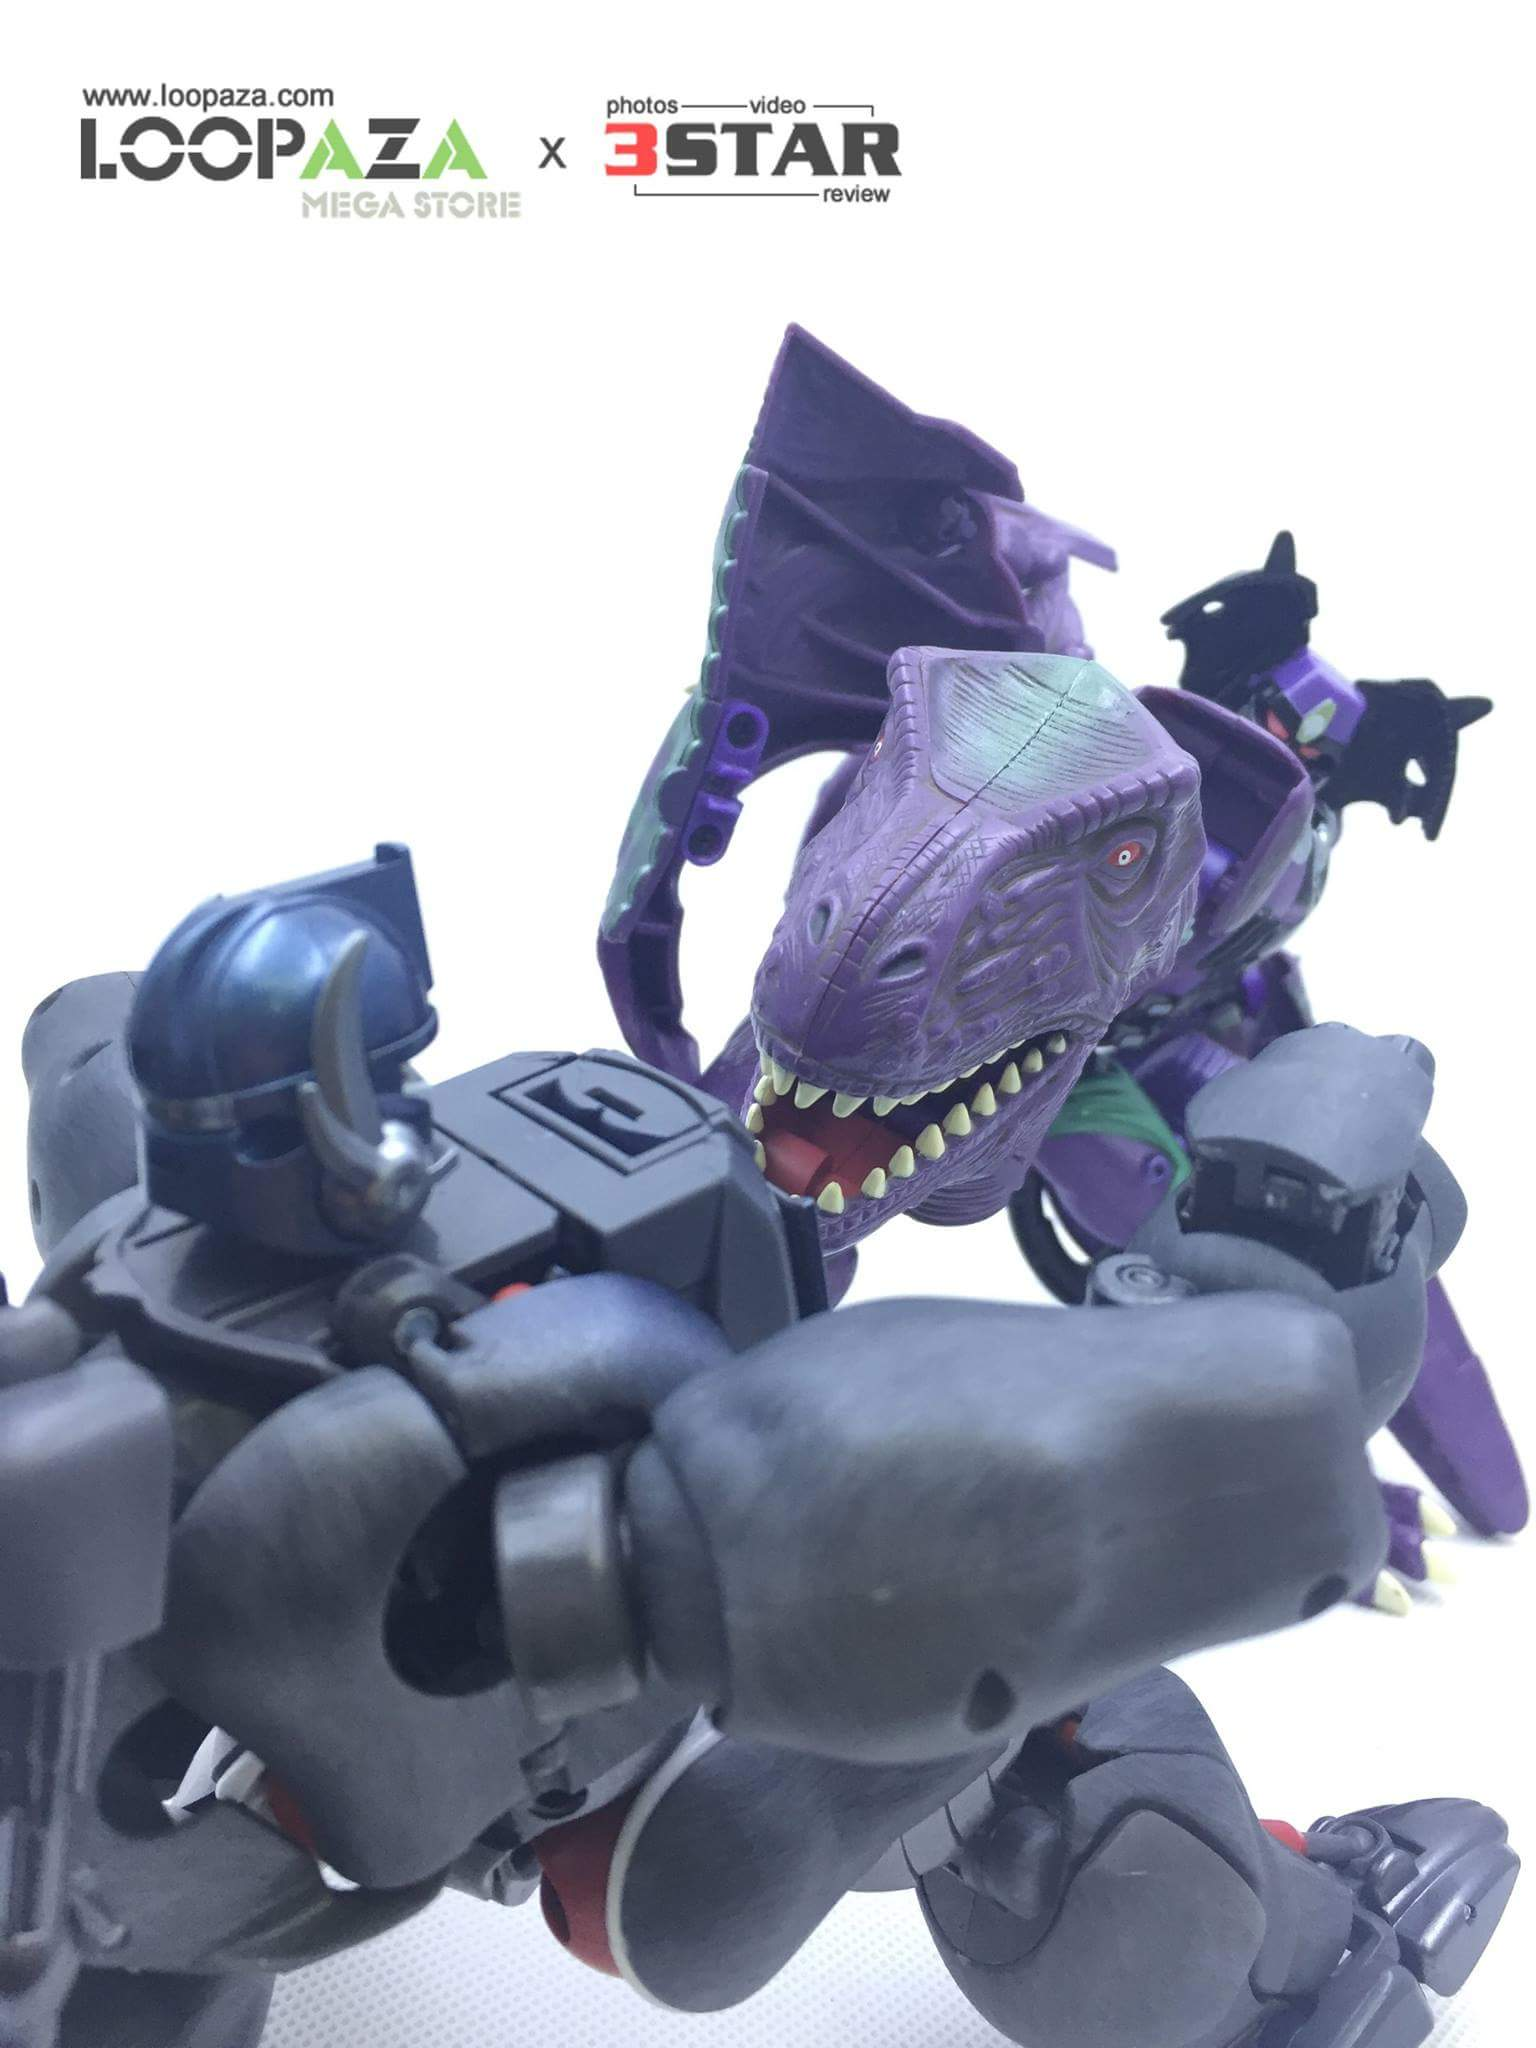 [Masterpiece] MP-32, MP-38 Optimus Primal et MP-38+ Burning Convoy (Beast Wars) - Page 3 61O2Oxvi